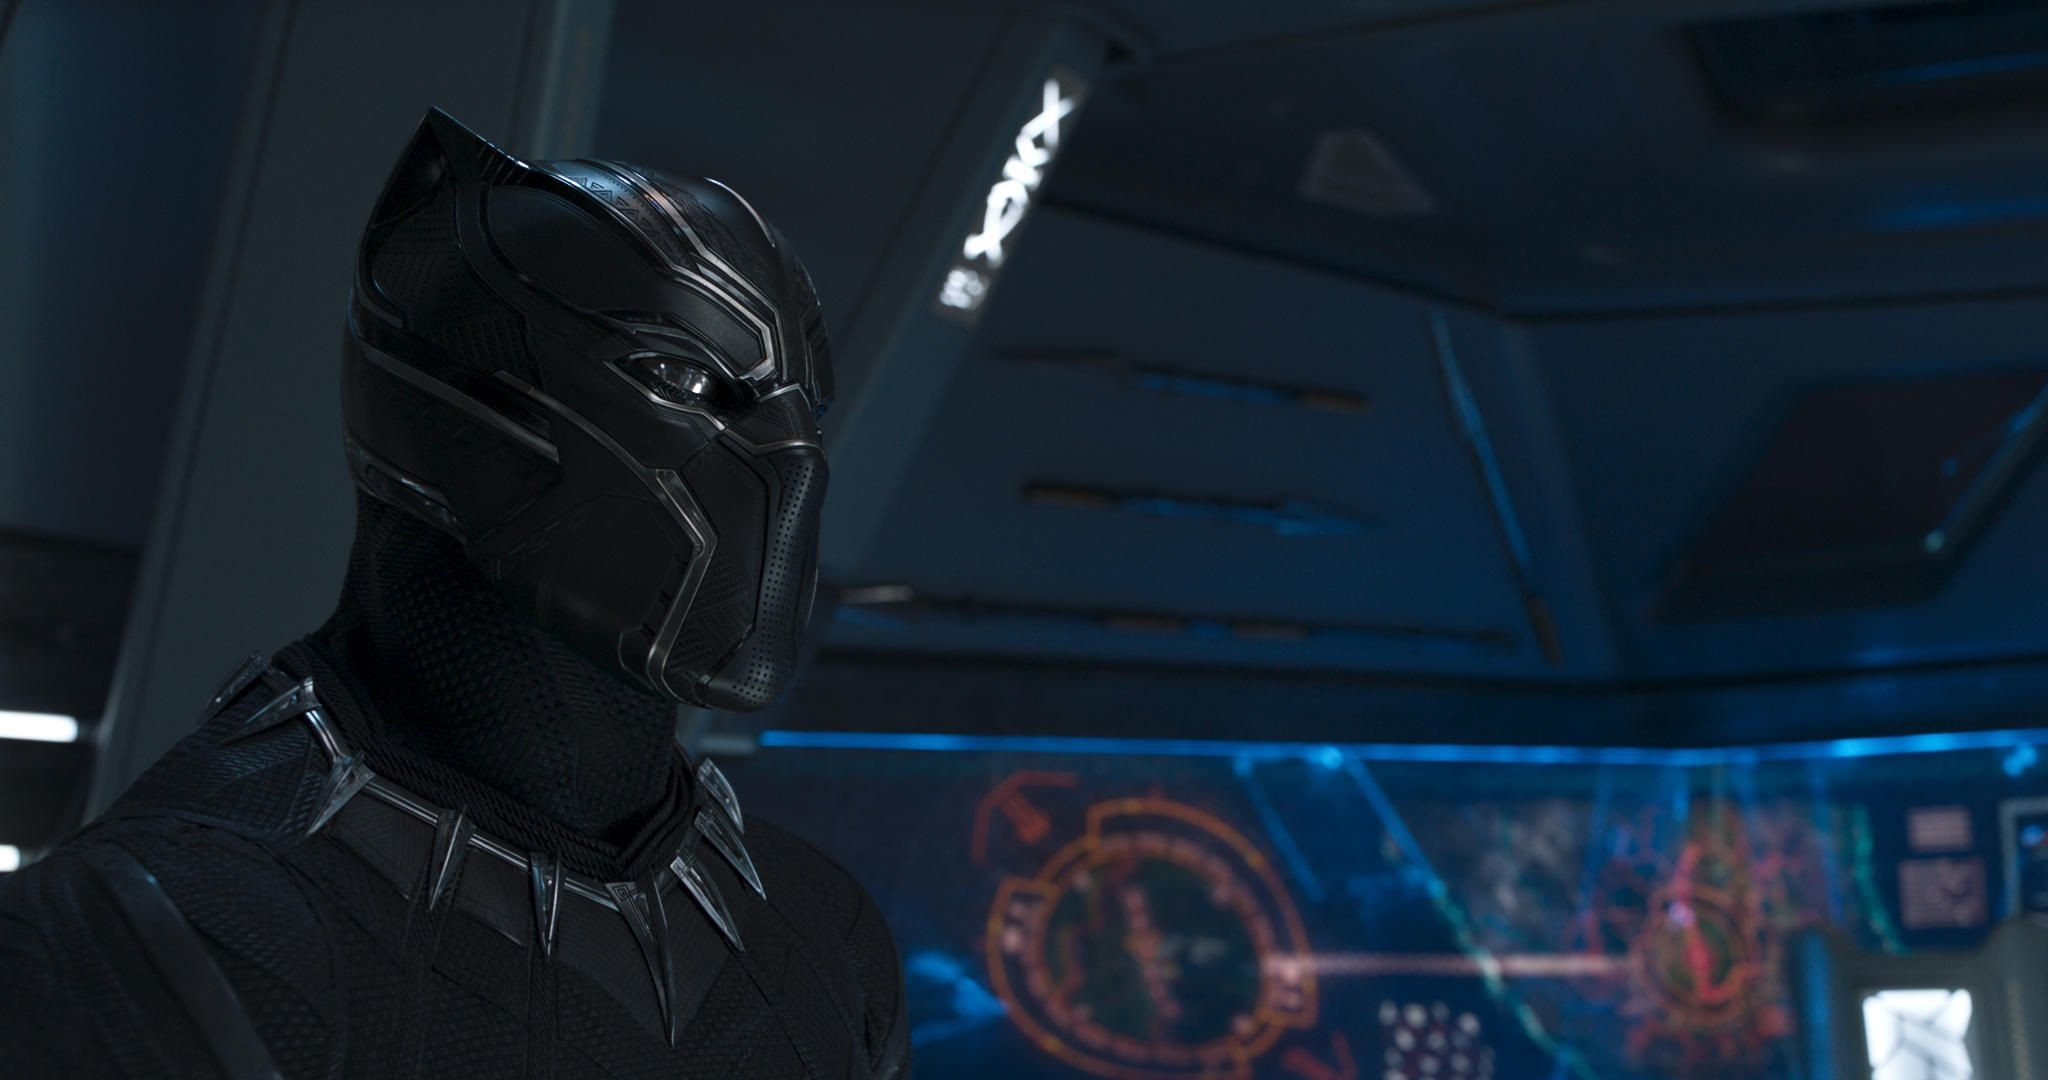 Res: 2048x1080, 'Black Panther' is about how you use power wisely